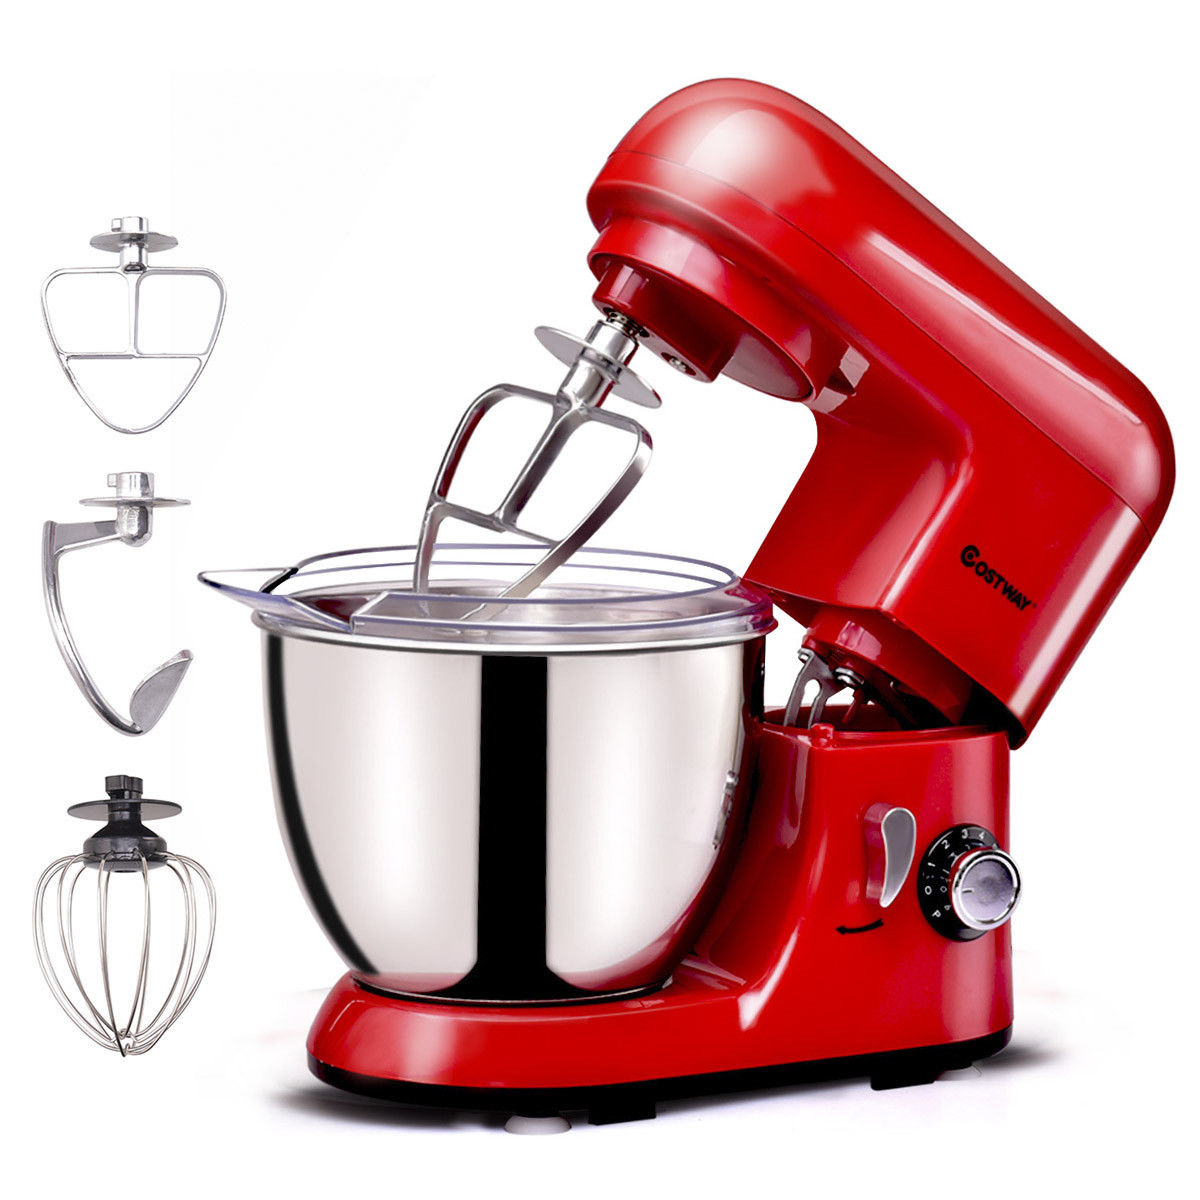 Costway Electric Food Stand Mixer 6 Speed 4.3Qt 550W Tilt-Head Stainless Steel Bowl by Costway